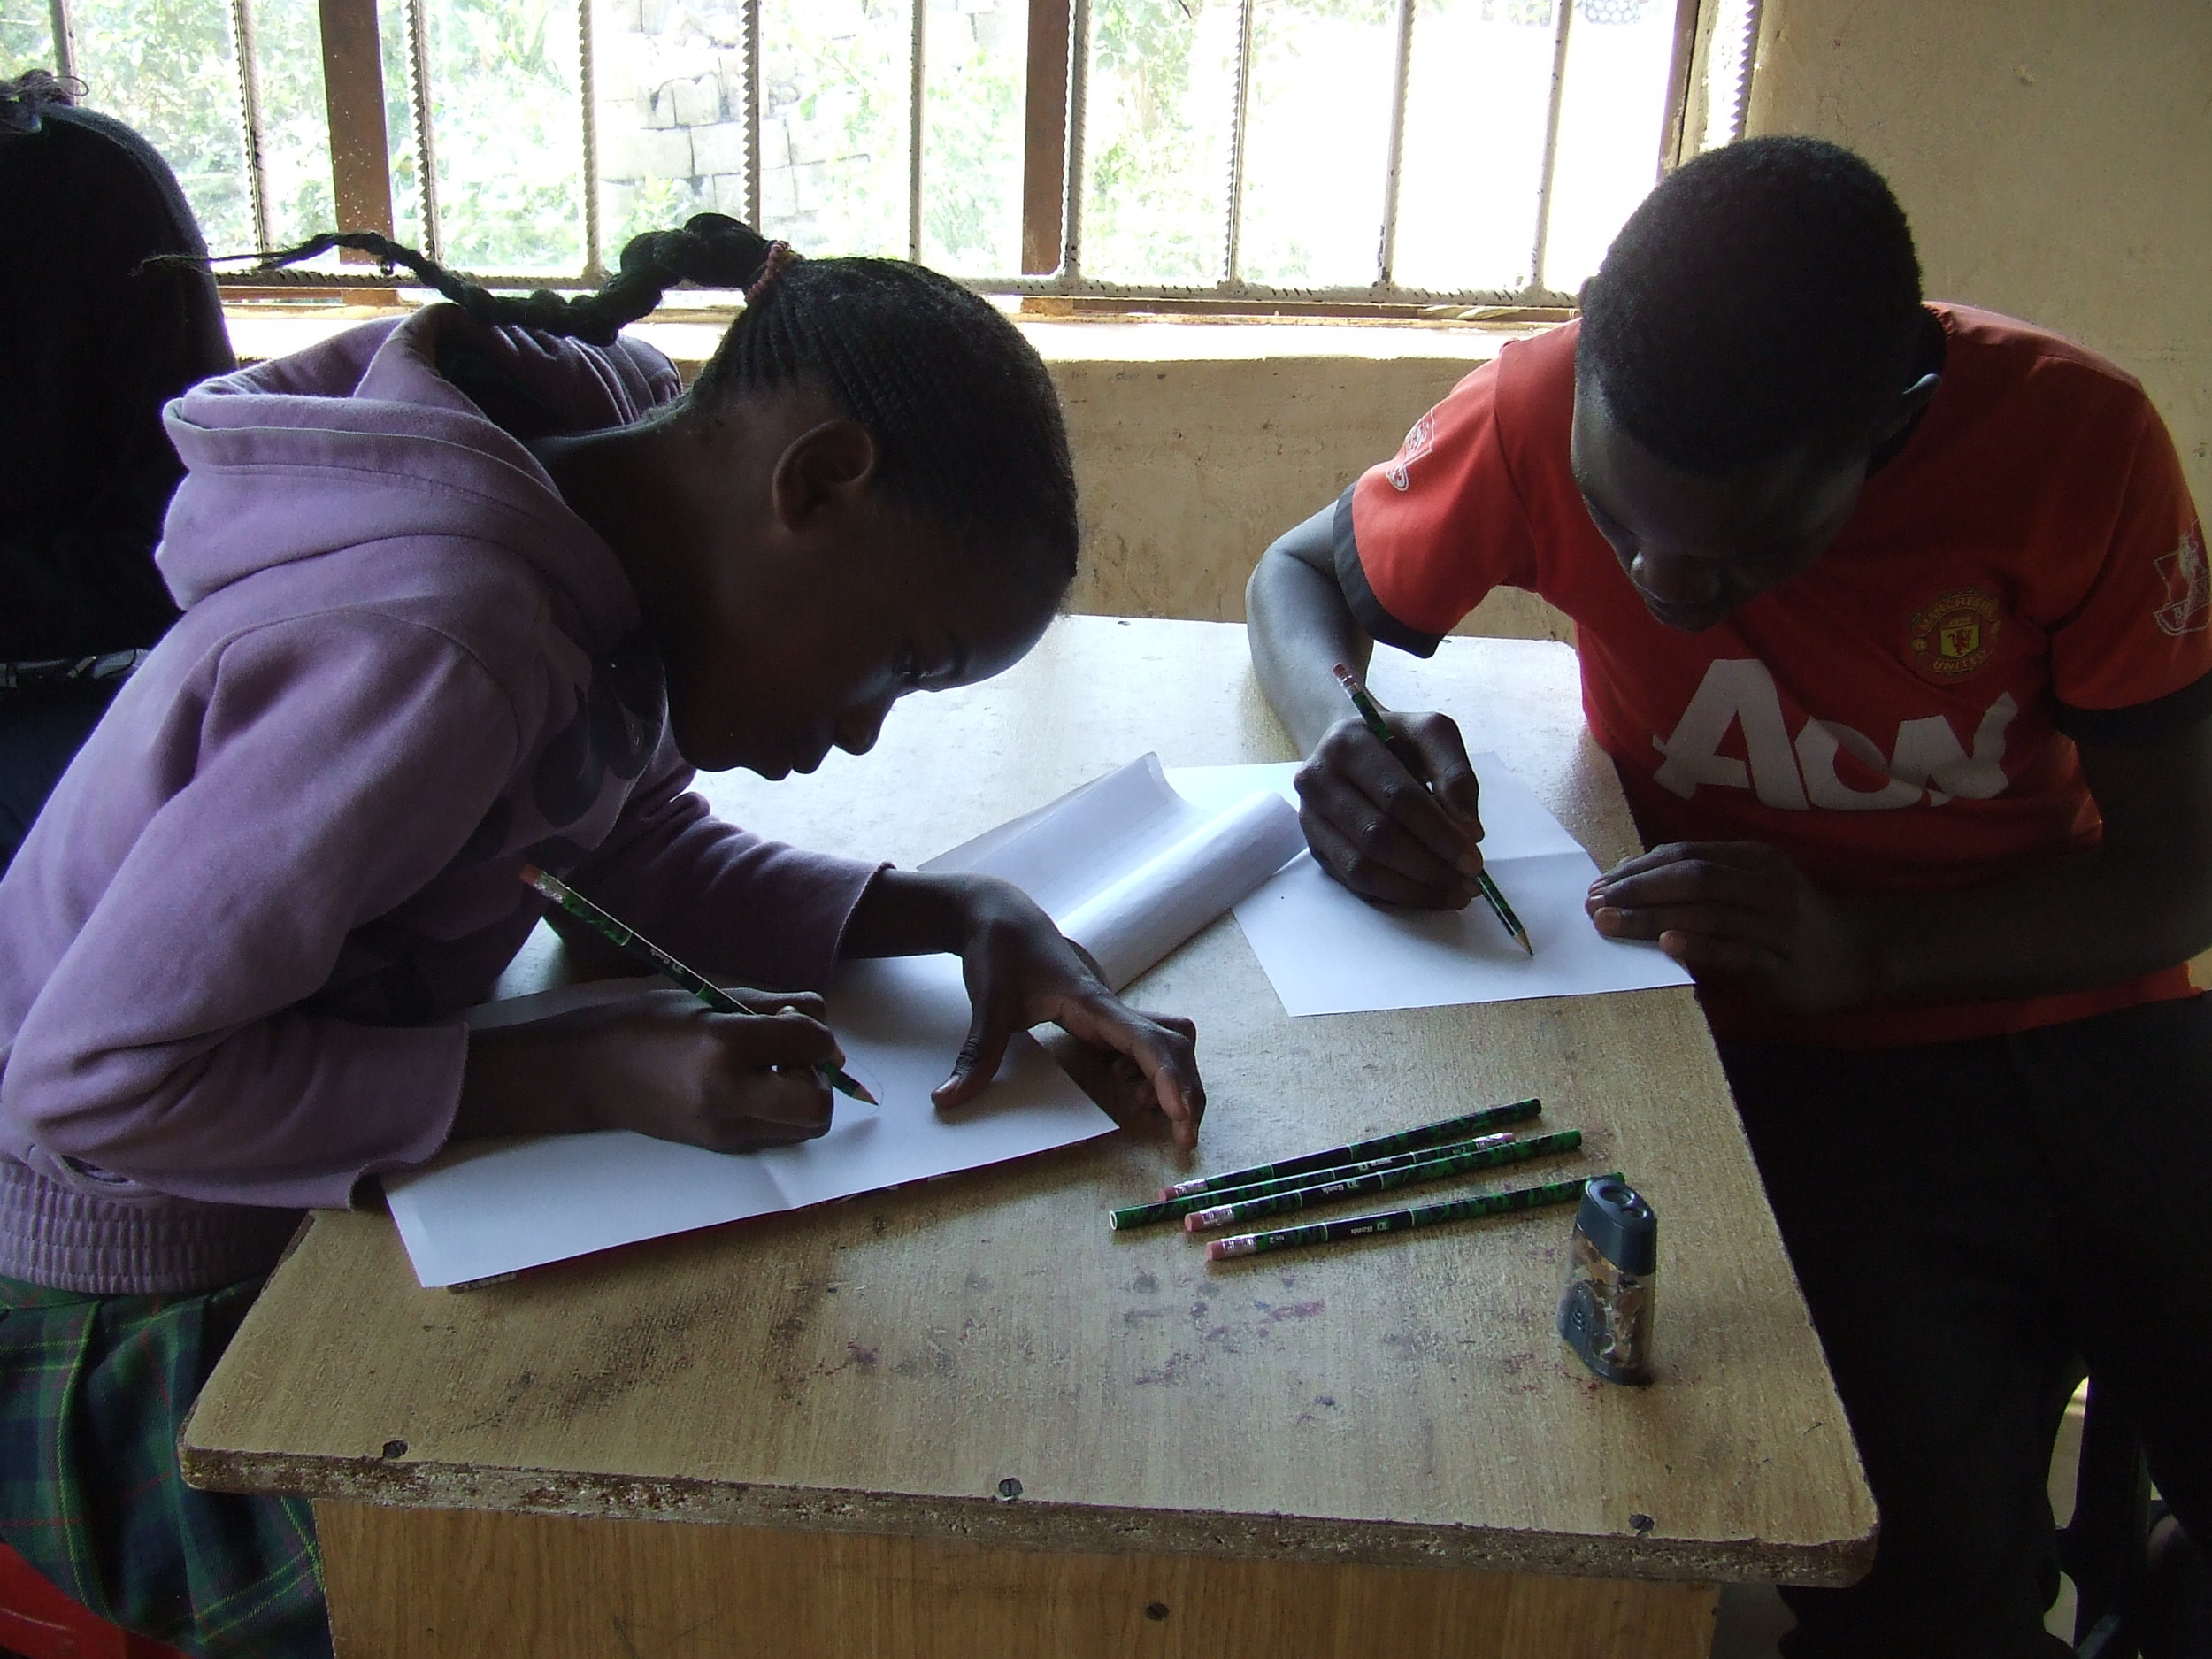 Memory and Kelvin, two AYC members, focus on their letters to their sponsors.